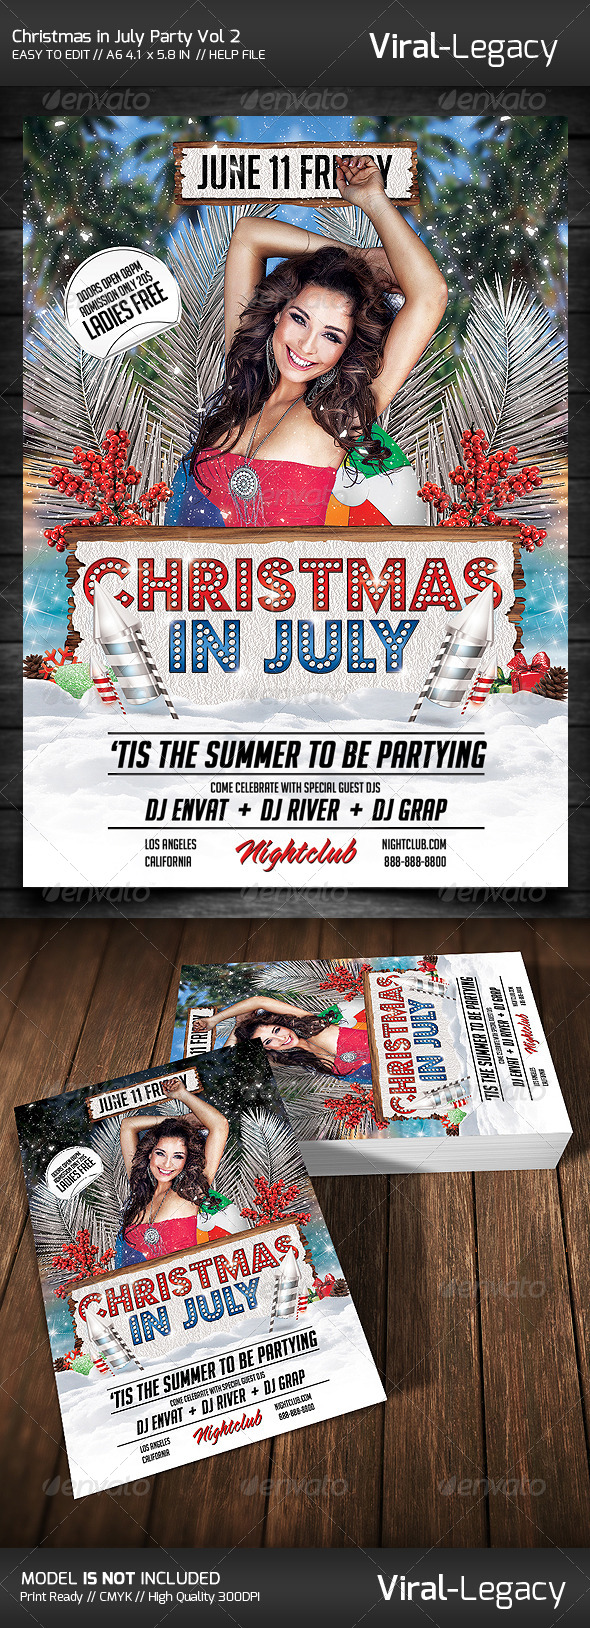 GraphicRiver Christmas in July Vol 2 7808532